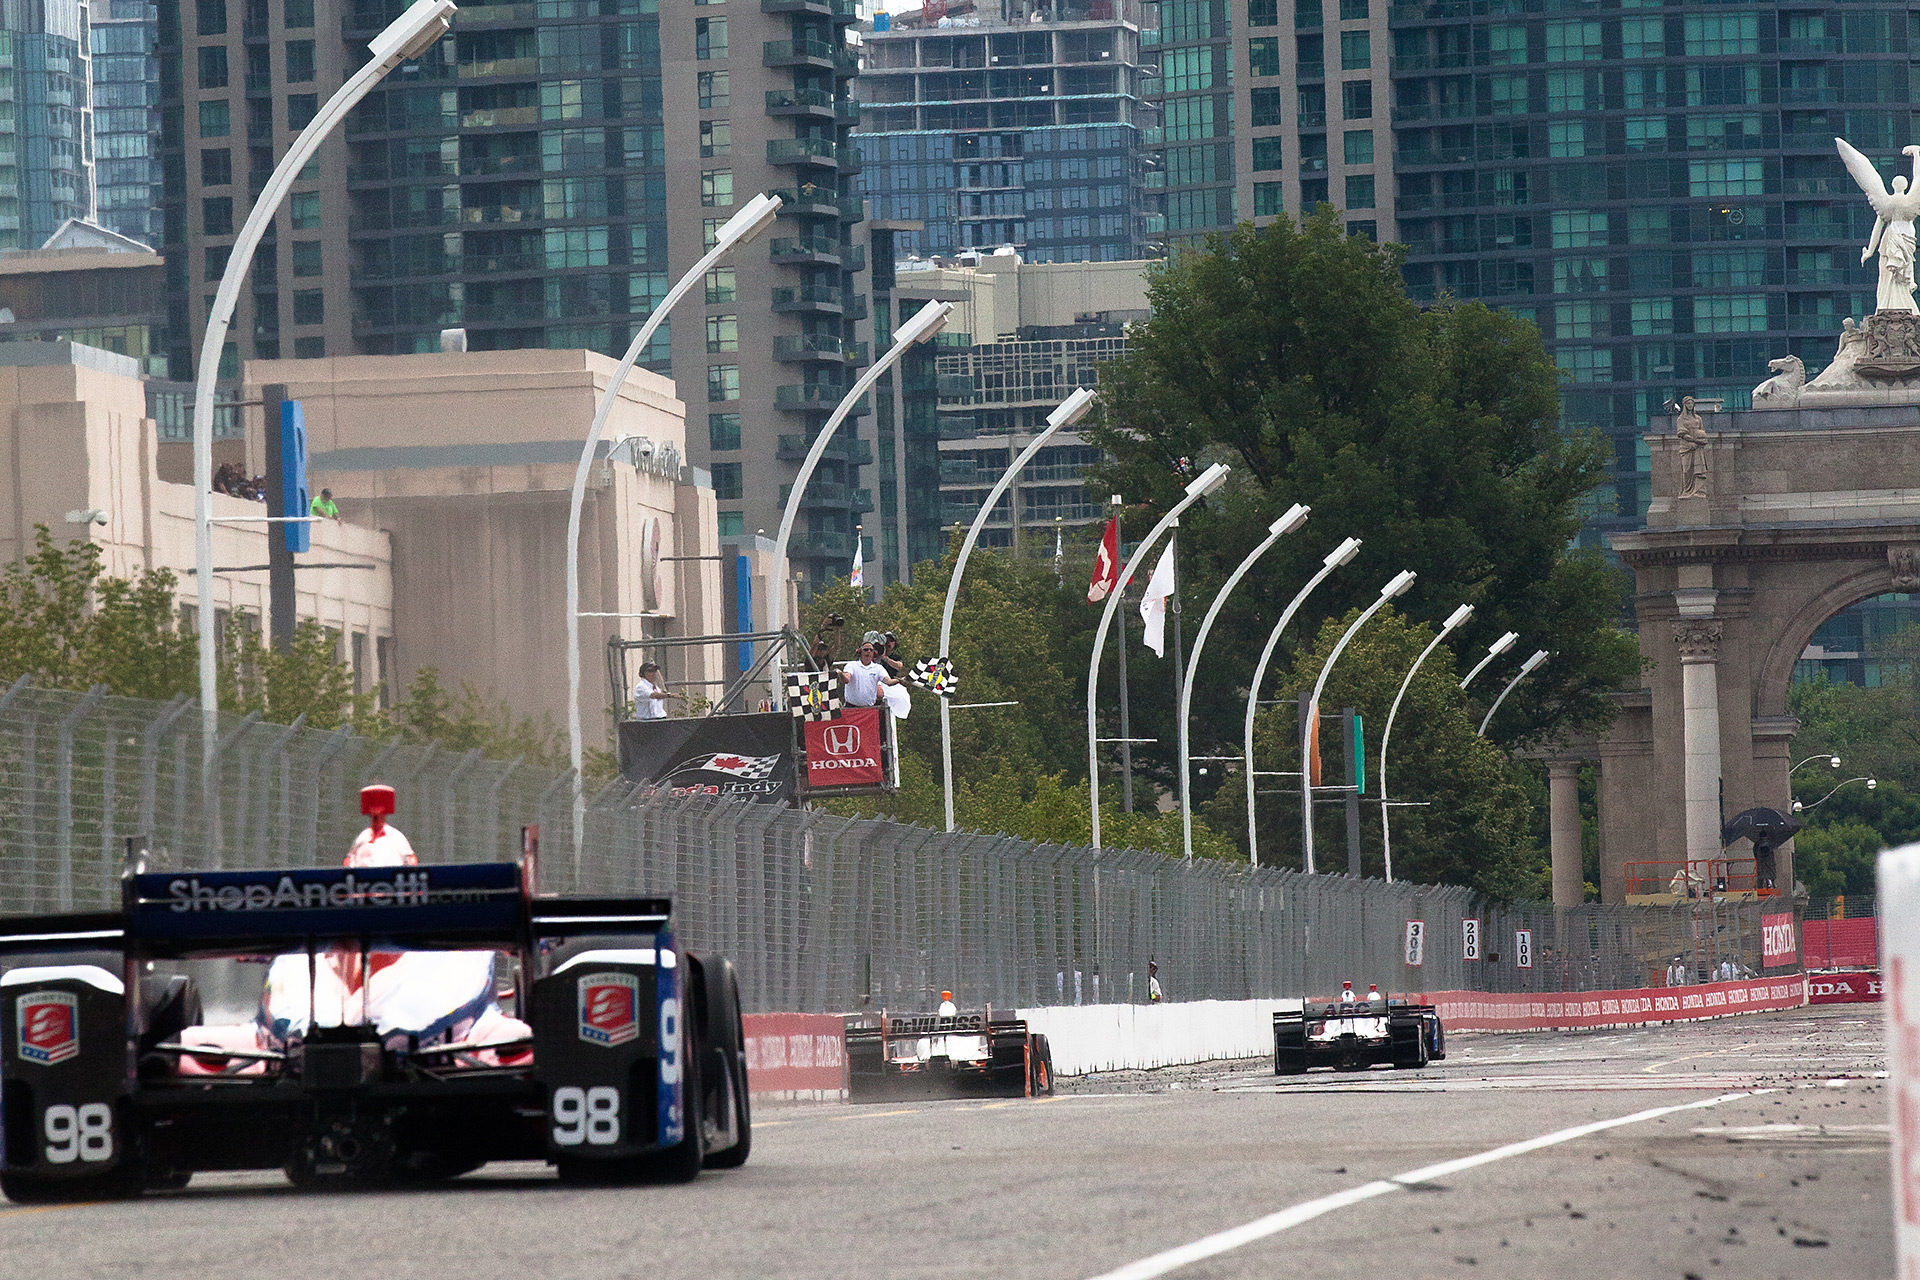 July 16, 2017 - Toronto, ON - DeVilbiss Penske driver no. 2, Josef Newgarden takes the checkered flag with no. 98 Alexander Rossi finishing 1.8704 seconds behind. ( Jeffrey Turford / TDP )